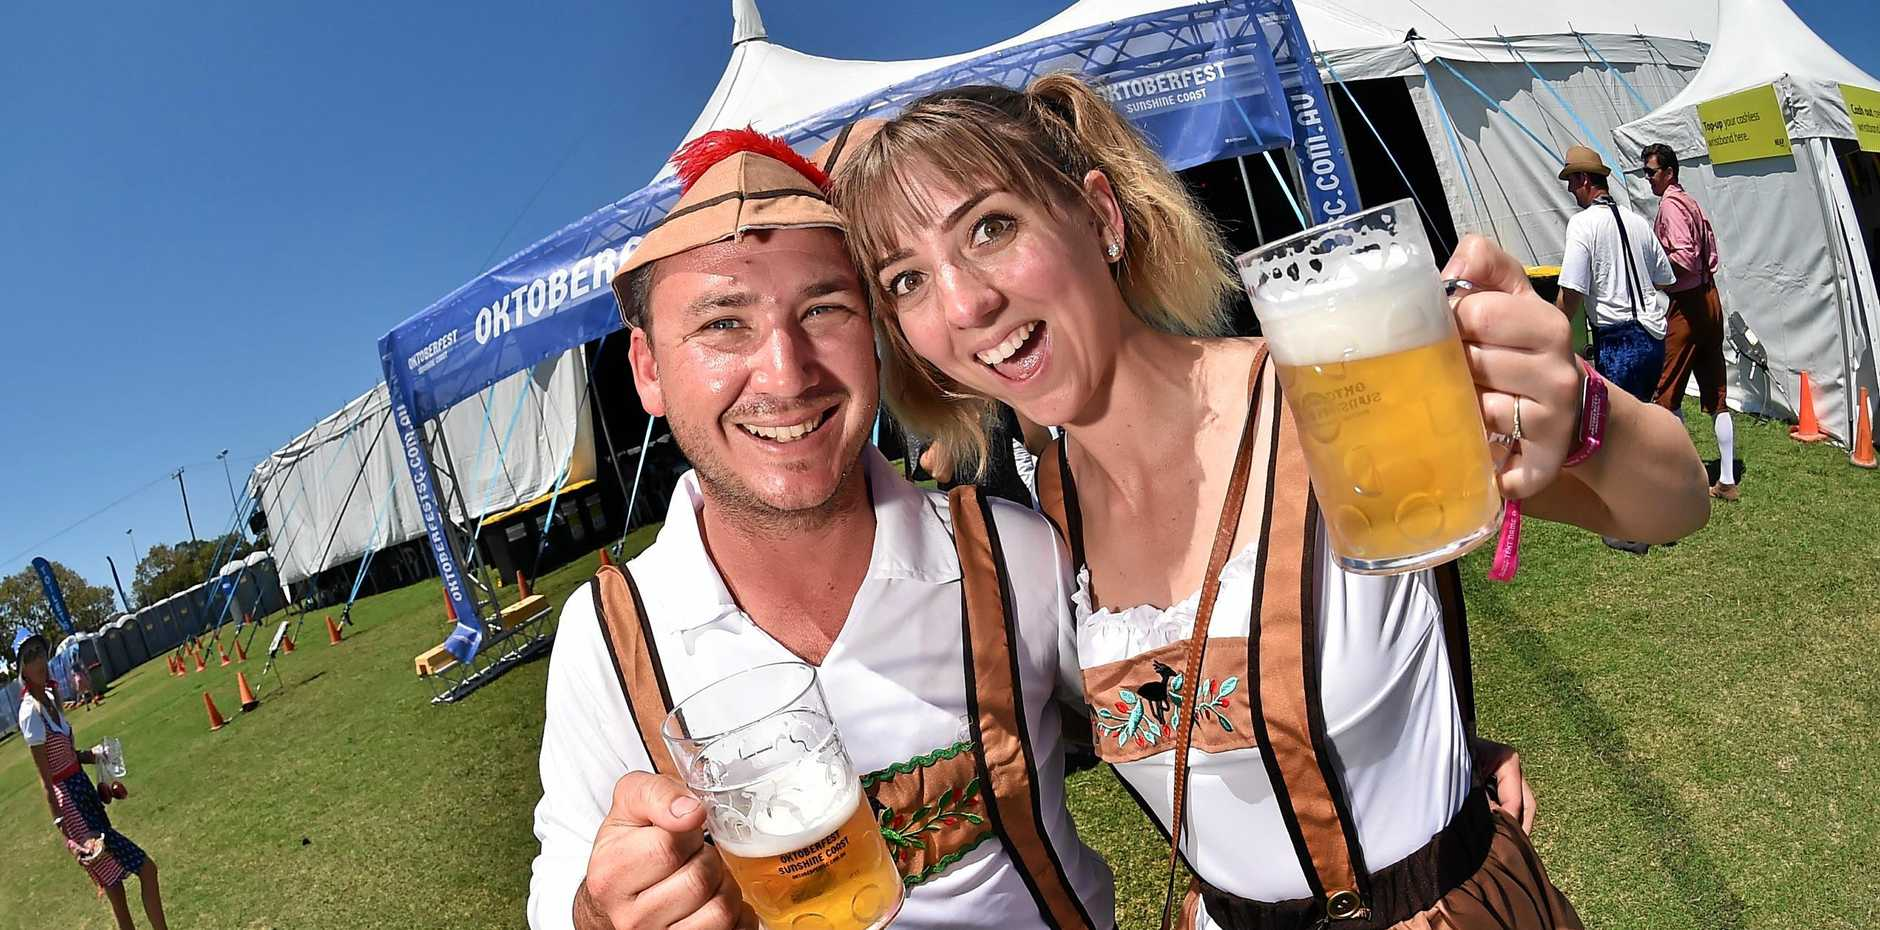 Events like Oktoberfest are crowd-pullers.